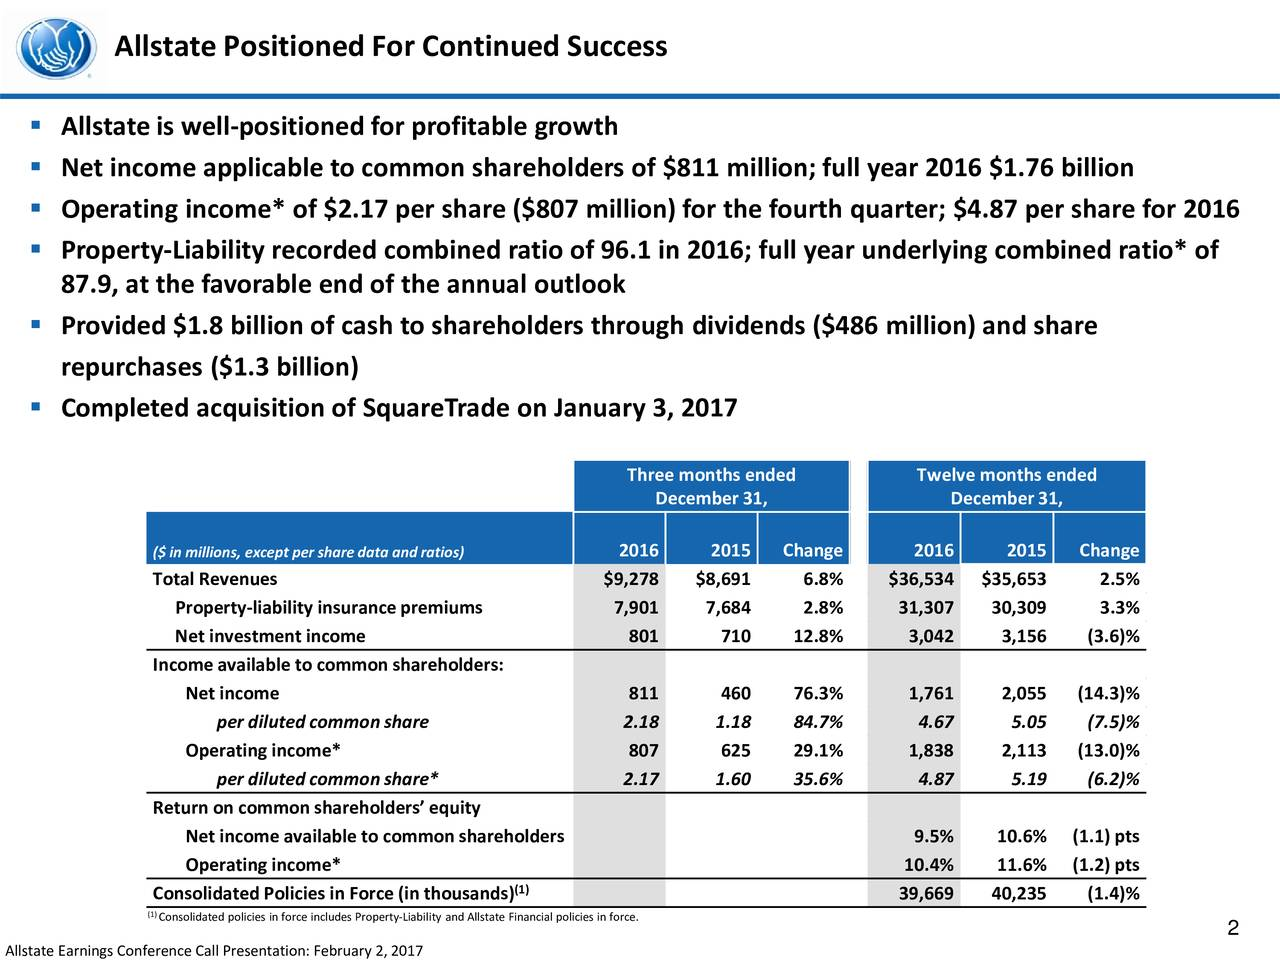 Allstate is well-positioned for profitable growth Net income applicable to common shareholders of $811 million; full year 2016$1.76 billion Operating income* of $2.17 per share ($807 million) for the fourth quarter; $4.87 per share for 2016 Property-Liability recorded combined ratio of 96.1 in 2016; full year underlying combined ratio* of 87.9, at the favorable end of the annual outlook Provided $1.8 billion of cash to shareholders through dividends ($486 million) and share repurchases ($1.3 billion) Completed acquisition of SquareTrade on January 3, 2017 Three months ended Twelve months ended December 31, December 31, ($ in millions, except per sharedata and ratios) 2016 2015 Change 2016 2015 Change Total Revenues $9,278 $8,691 6.8% $36,534 $35,653 2.5% Property-liability insurance premiums 7,901 7,684 2.8% 31,307 30,309 3.3% Net investment income 801 710 12.8% 3,042 3,156 (3.6)% Income available to common shareholders: Net income 811 460 76.3% 1,761 2,055 (14.3)% per diluted common share 2.18 1.18 84.7% 4.67 5.05 (7.5)% Operating income* 807 625 29.1% 1,838 2,113 (13.0)% per diluted common share* 2.17 1.60 35.6% 4.87 5.19 (6.2)% Return on common shareholders equity Net income available to common shareholders 9.5% 10.6% (1.1) pts Operating income* 10.4% 11.6% (1.2) pts Consolidated Policies in Force (in thousands) 39,669 40,235 (1.4)% (Consolidated policies in force includes Property-Liability and Allstate Financial policies in force. 2